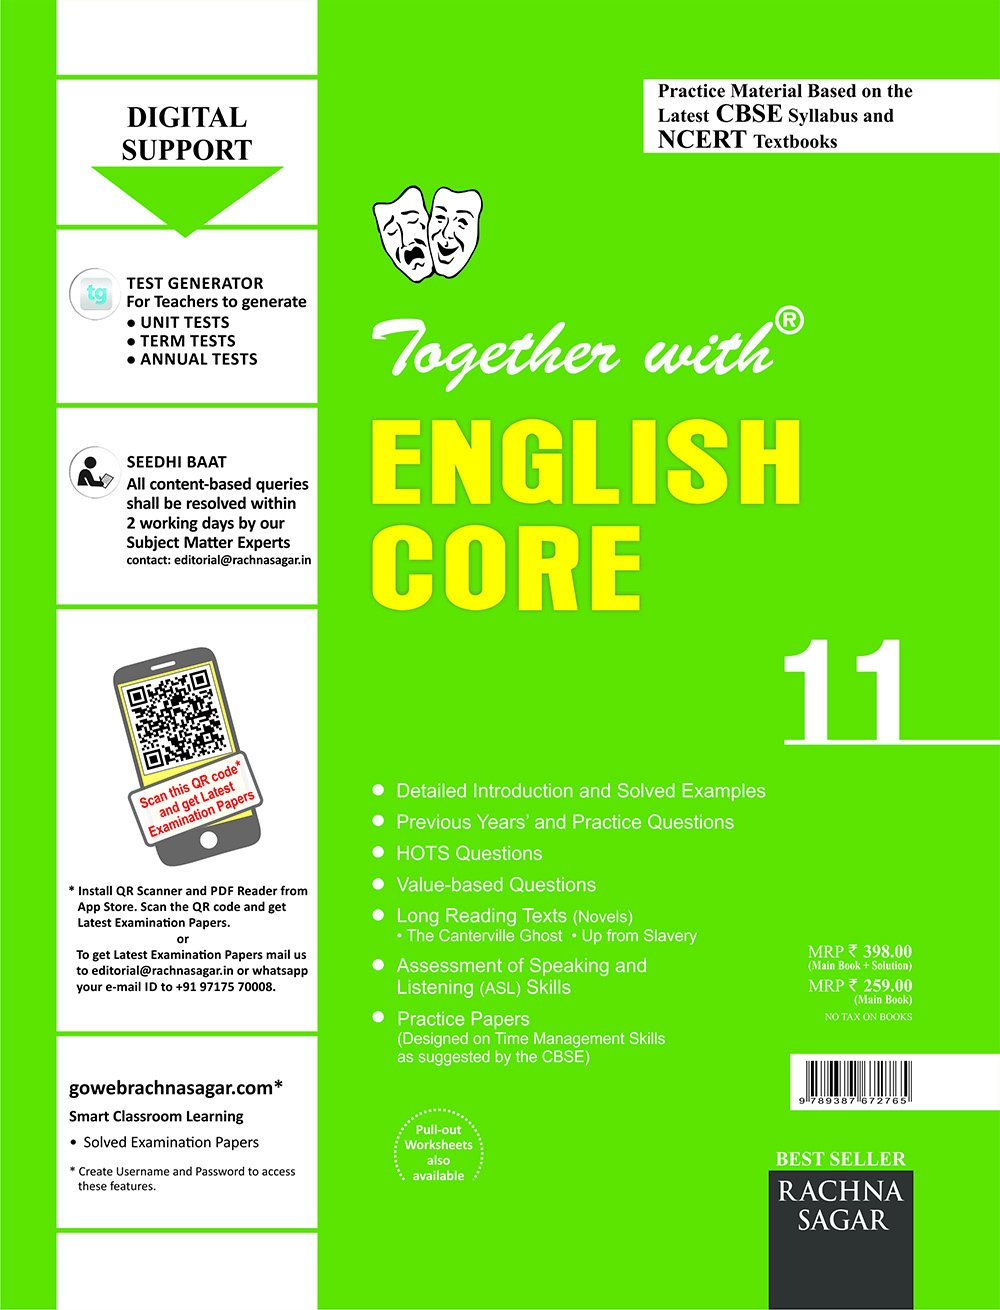 Together with CBSE/NCERT Practice Material Chapterwise for